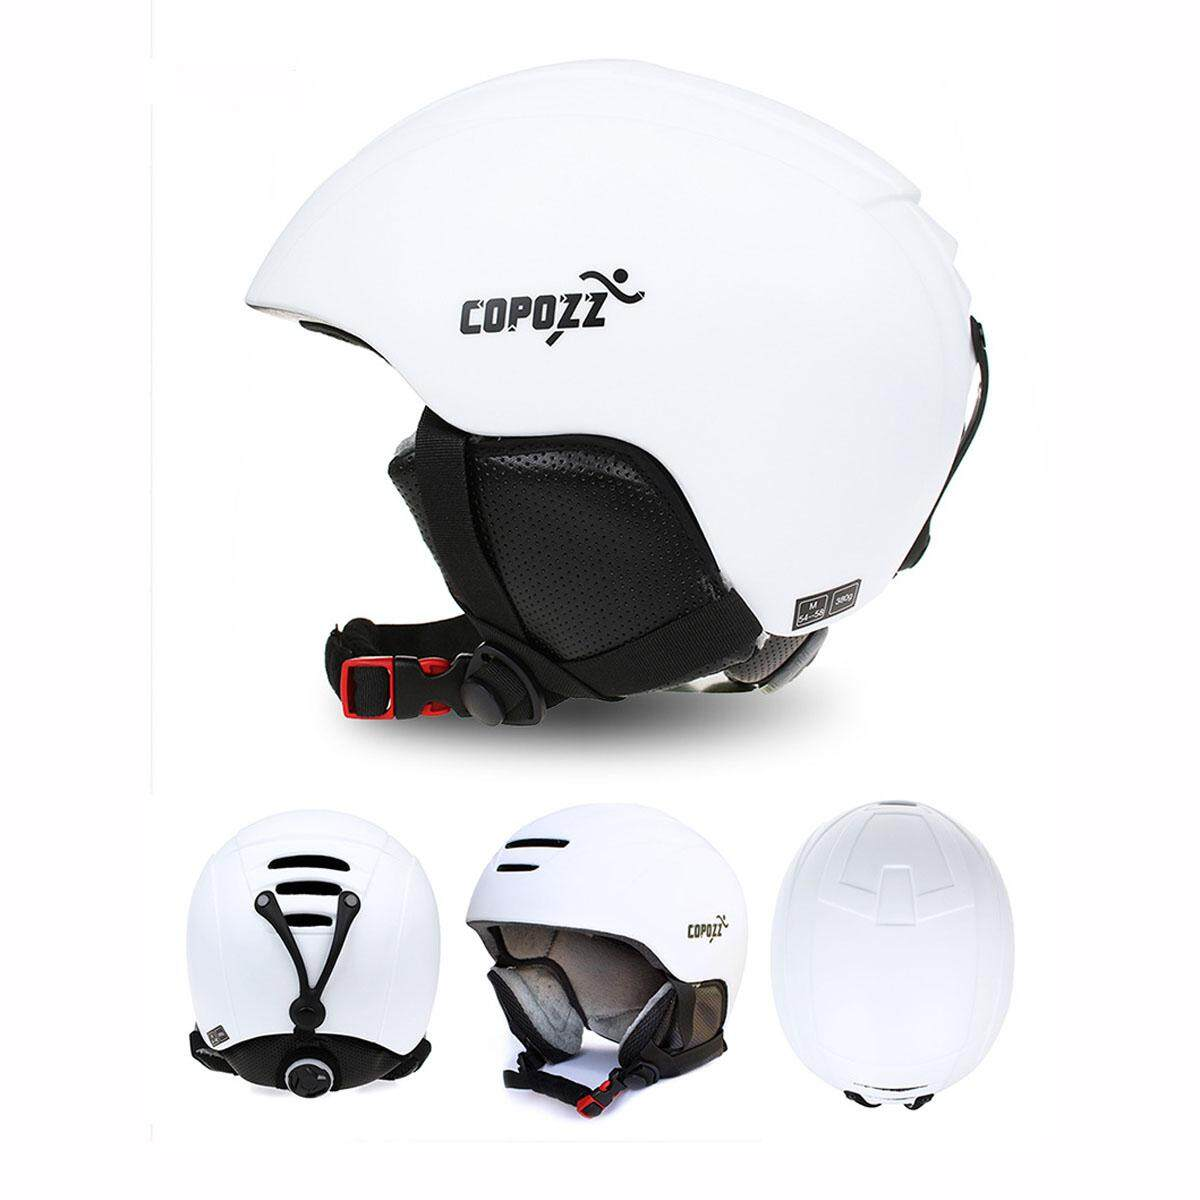 Copozz Ski Helmet Integrally-Molded Snowboard Helmet Men Women Skating Skateboard Skiing Helmet (white).